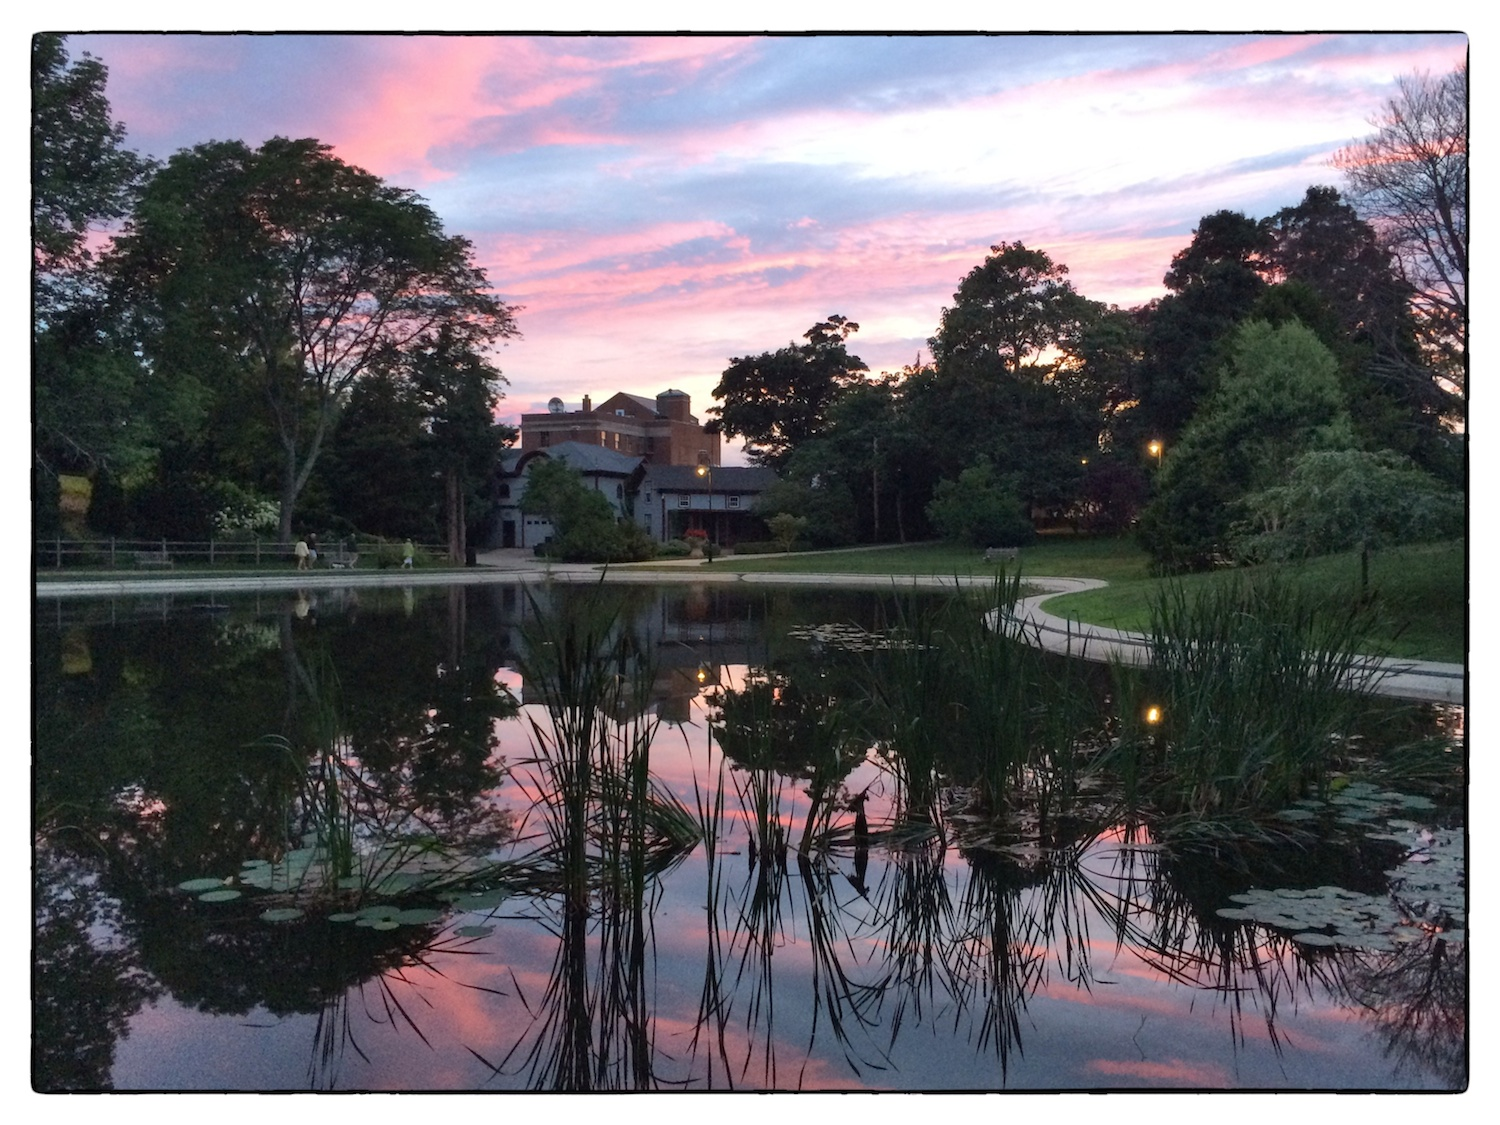 The pond at  Wilcox Park  at dusk, shot July 19, 2014, by  Lisa Rattray.